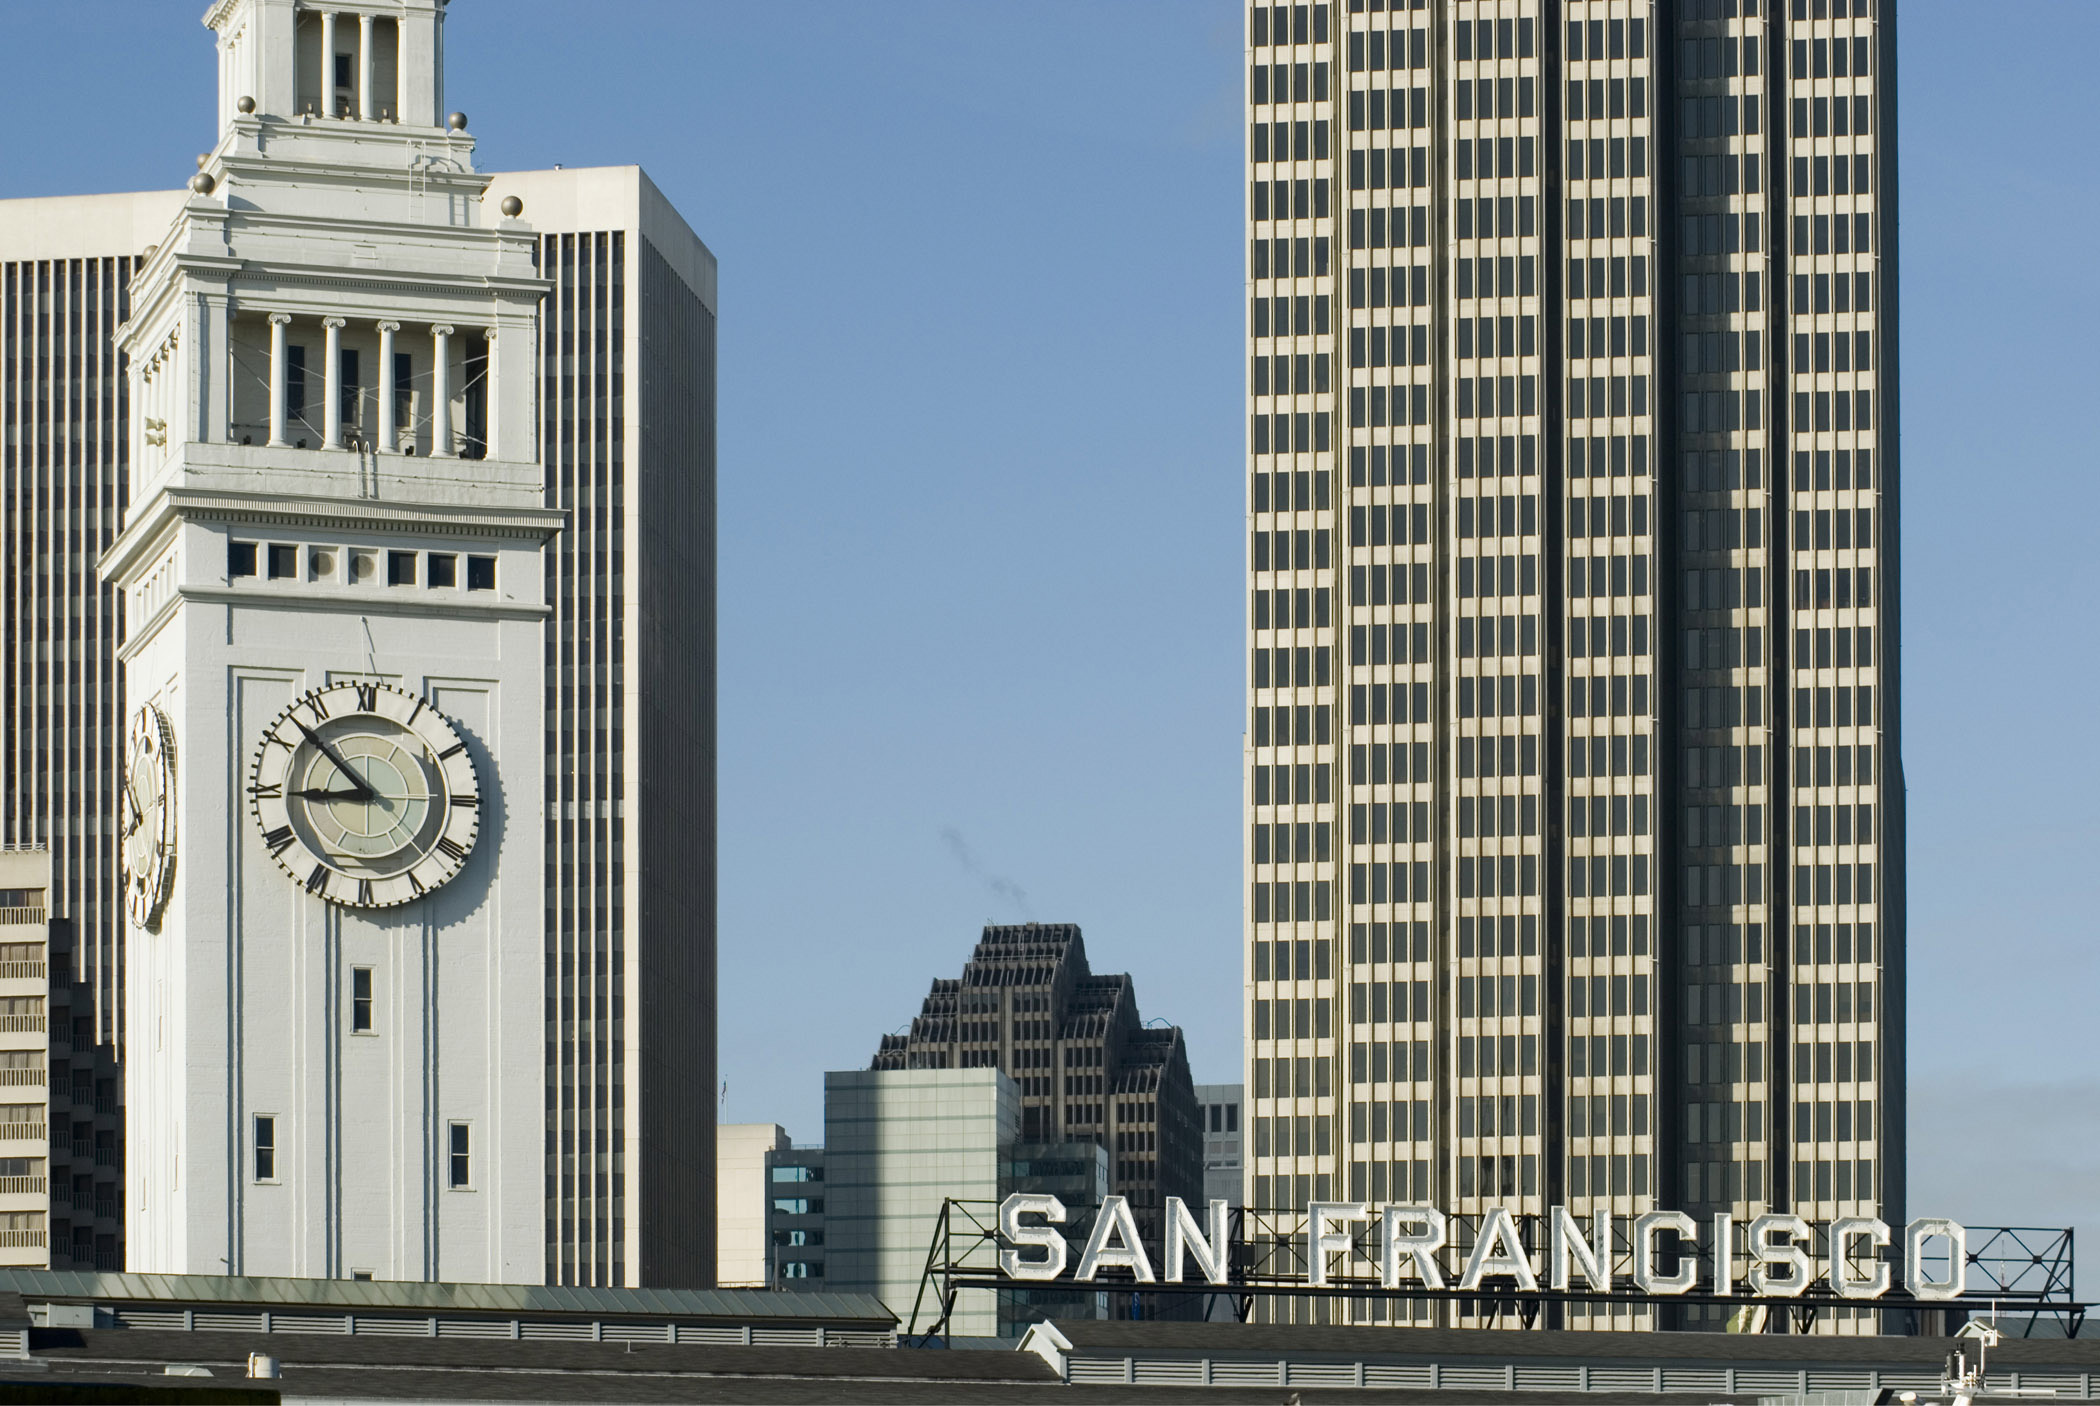 High Rise Architectural Embarcadero Buildings in San Francisco. Isolated on Lighter Gradient Blue Sky Background